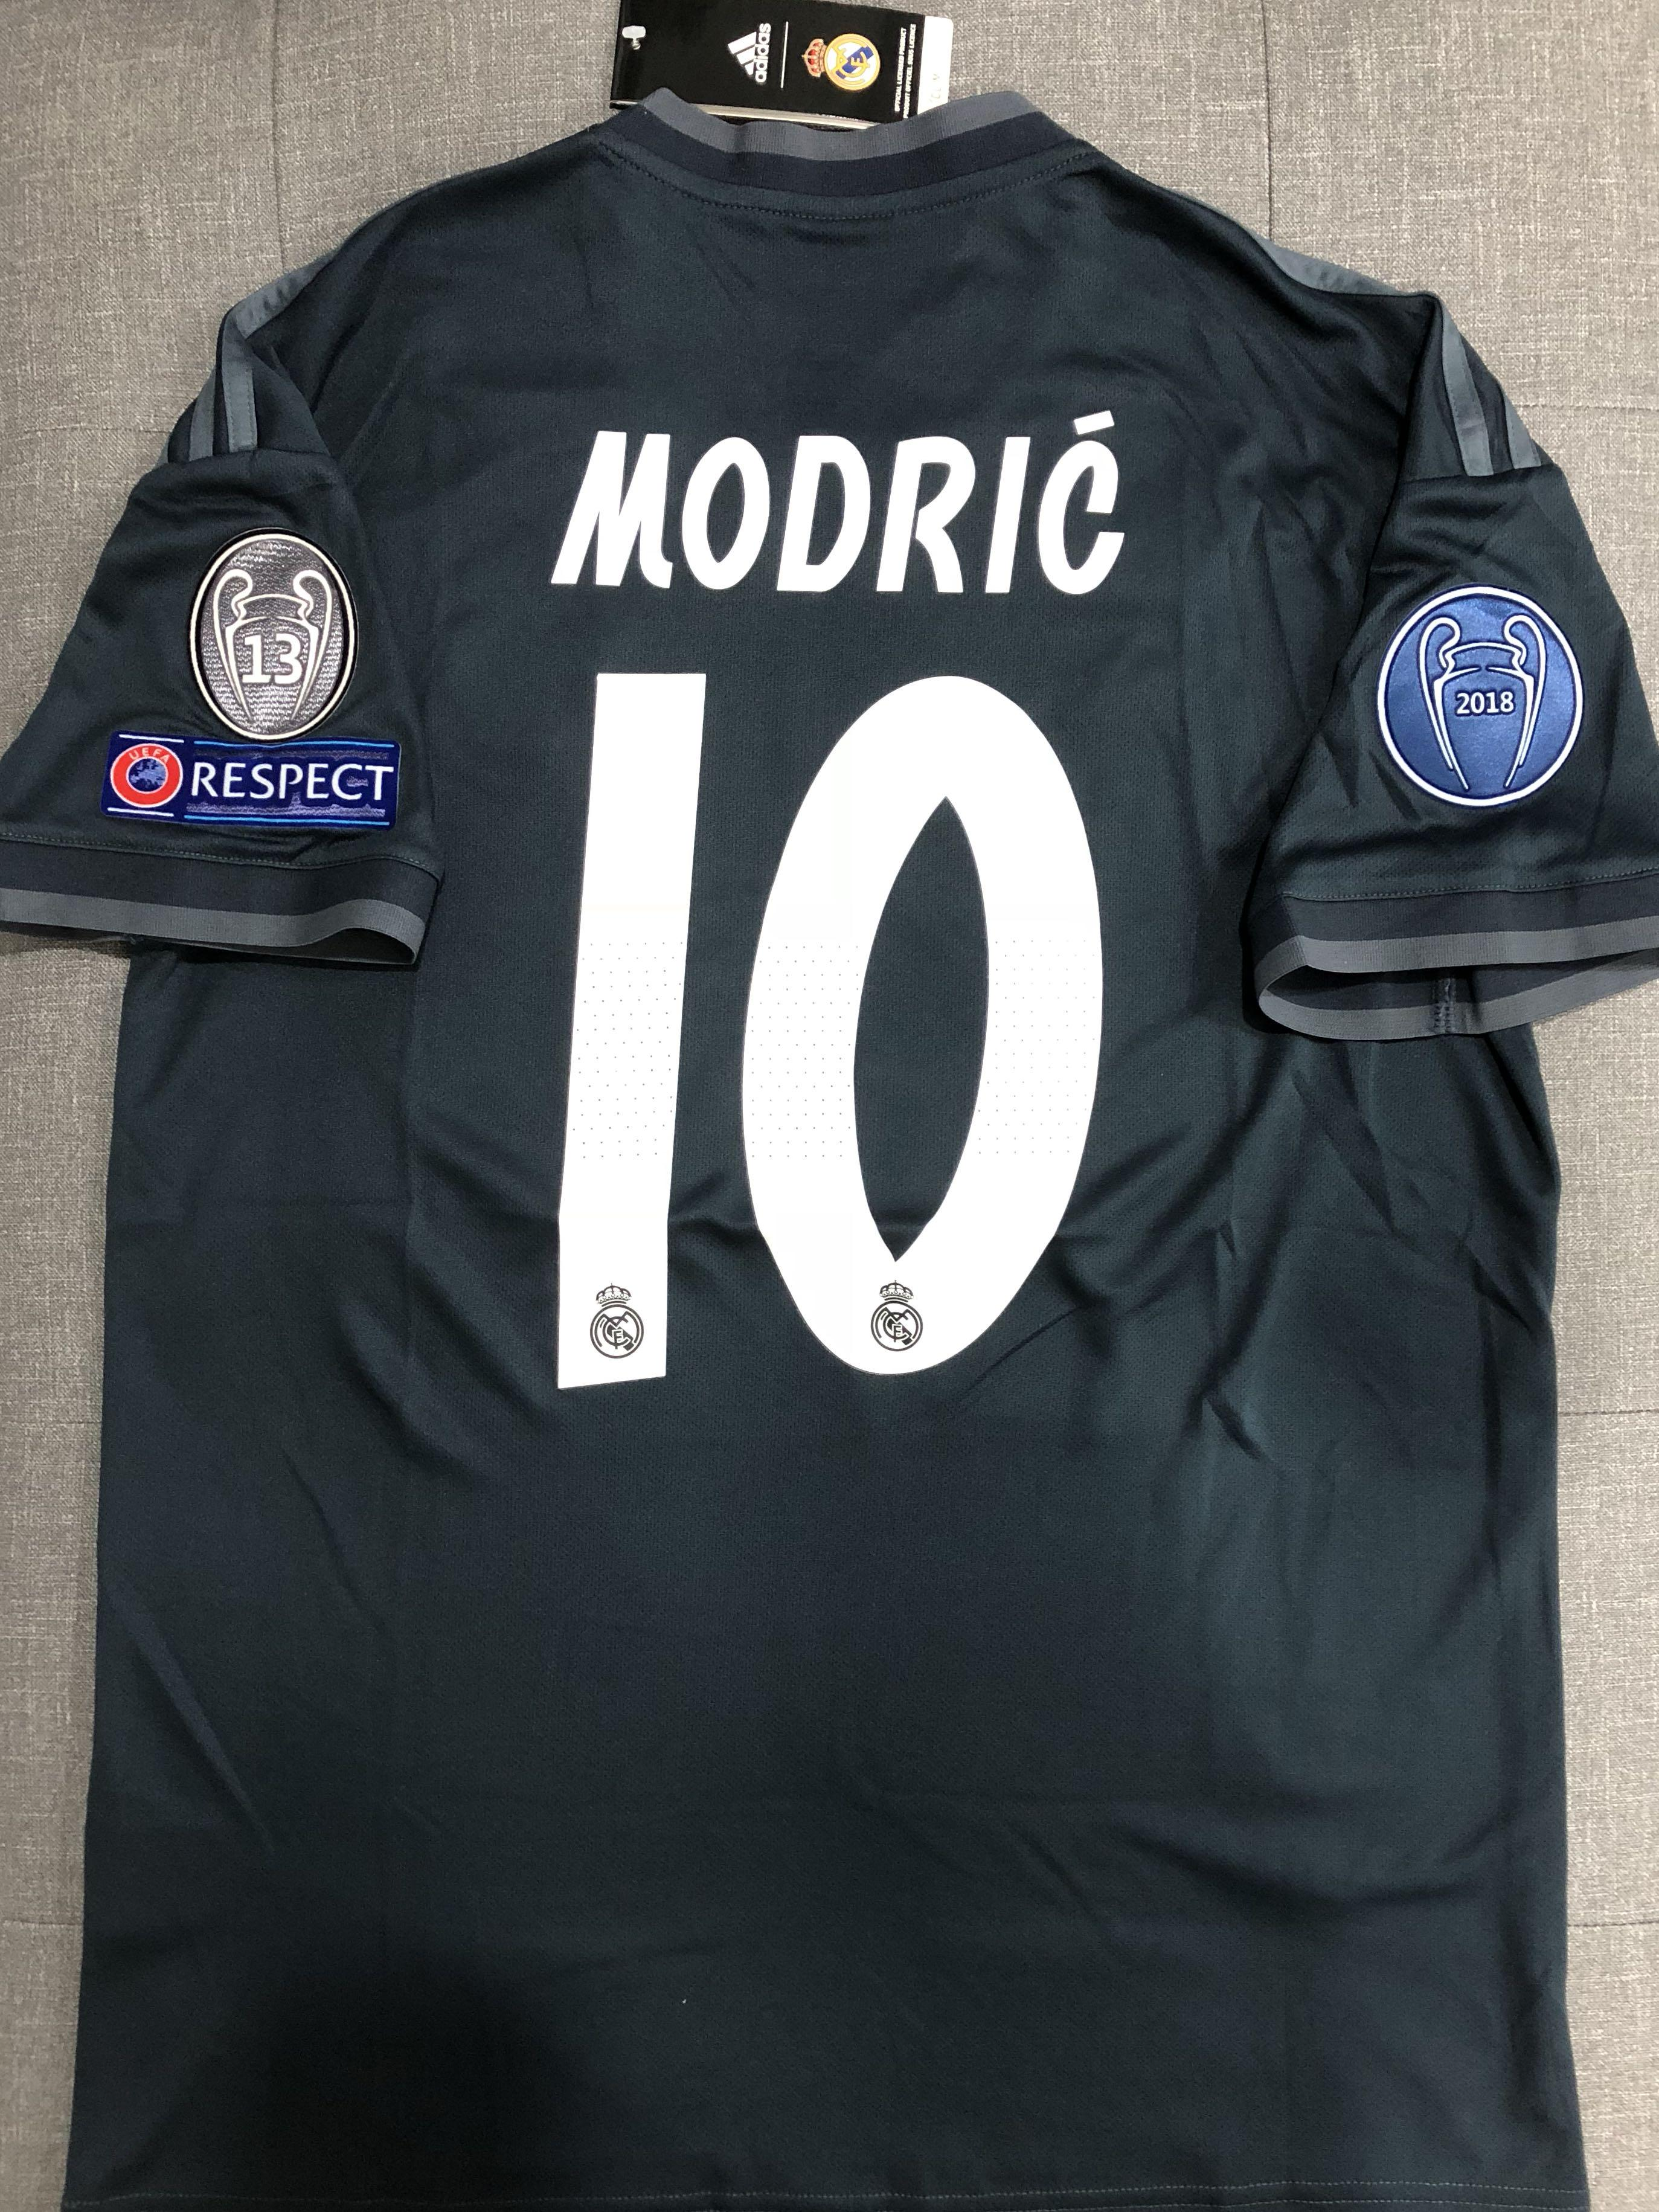 buy popular be0b2 f4920 In Stock: Real Madrid Away Modric Jersey, Sports, Sports ...